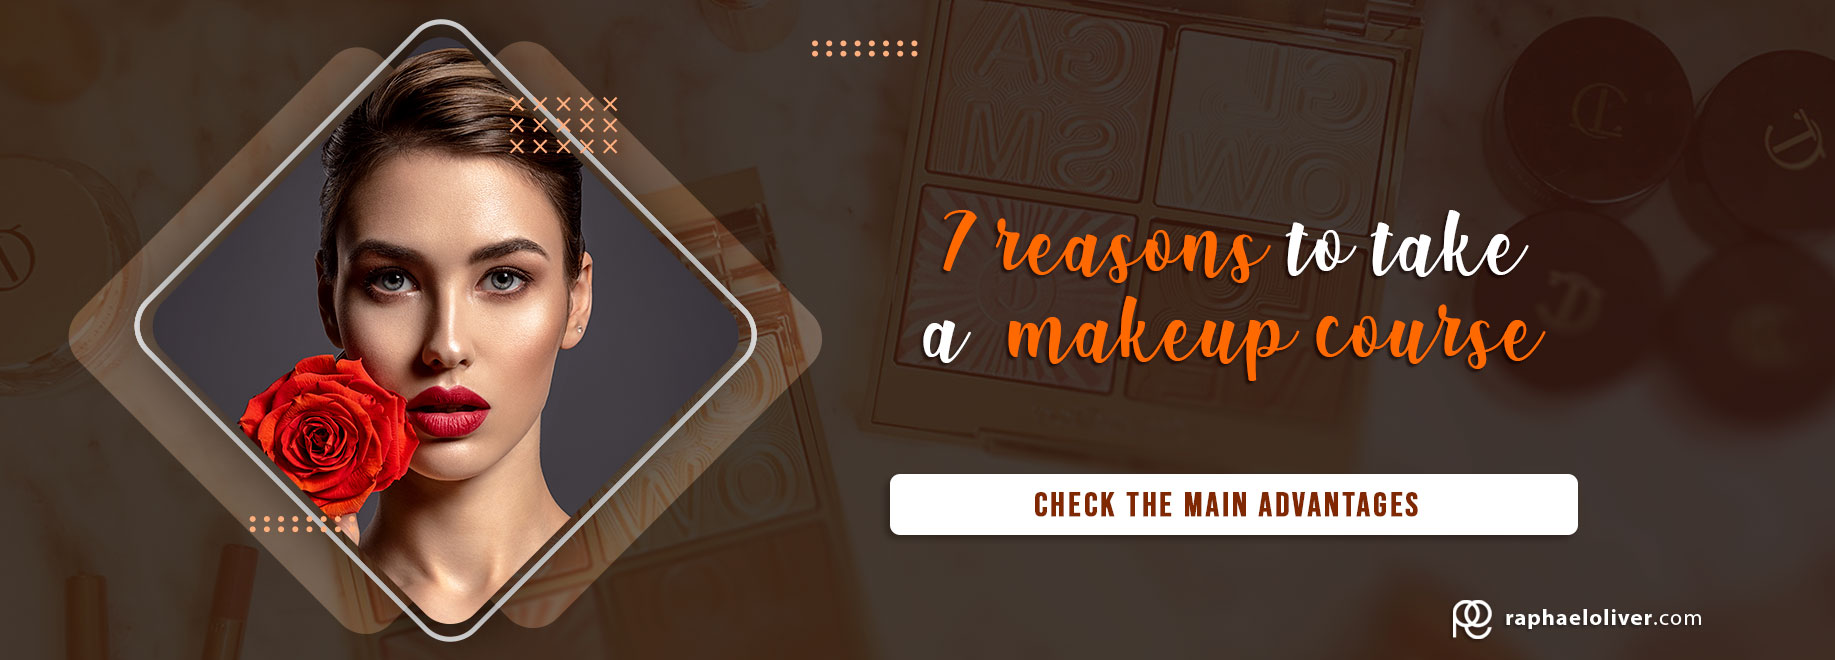 7 reasons to take a professional makeup course. See the main advantages.